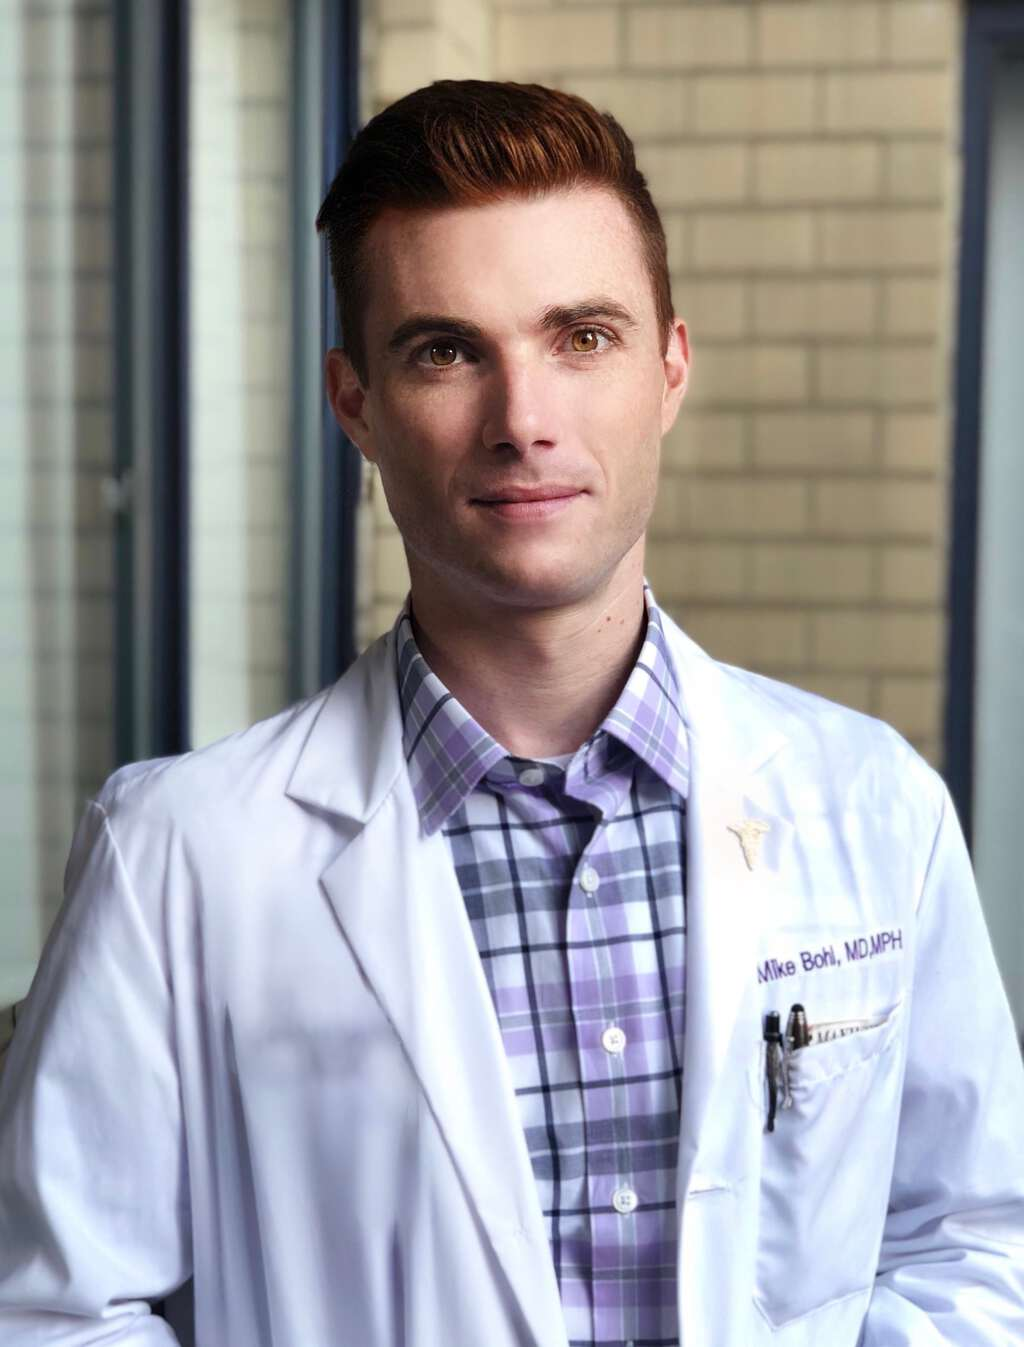 Dr. Mike Bohl